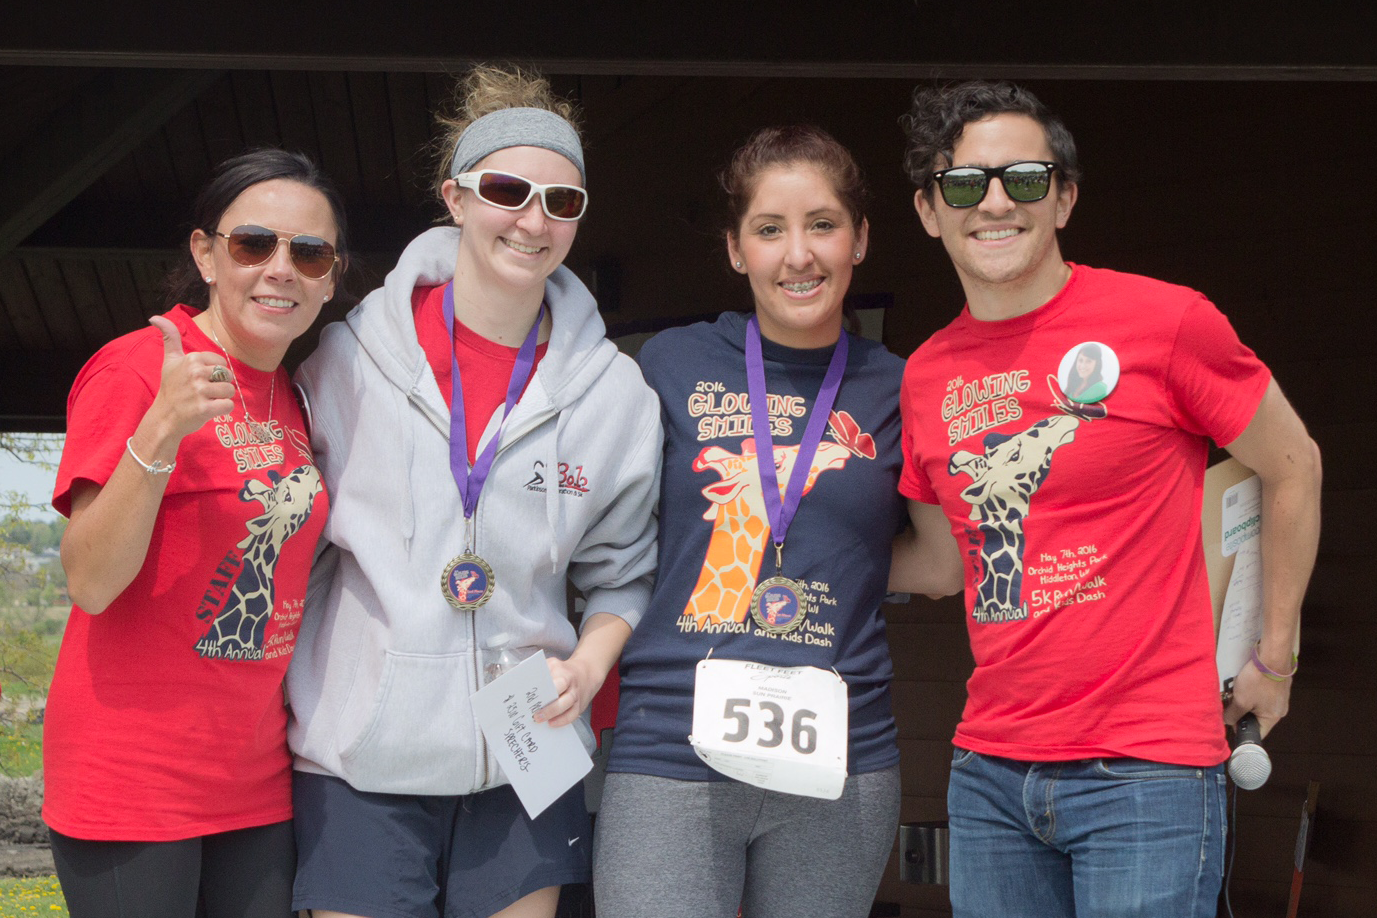 2016 Female winners from left to right: Coni Vergara Duhr, Sarah Booth (2nd place), Sandra Sandoval (1st place), Amber Hahn (3rd place, not pictured) and Juan Vergara.